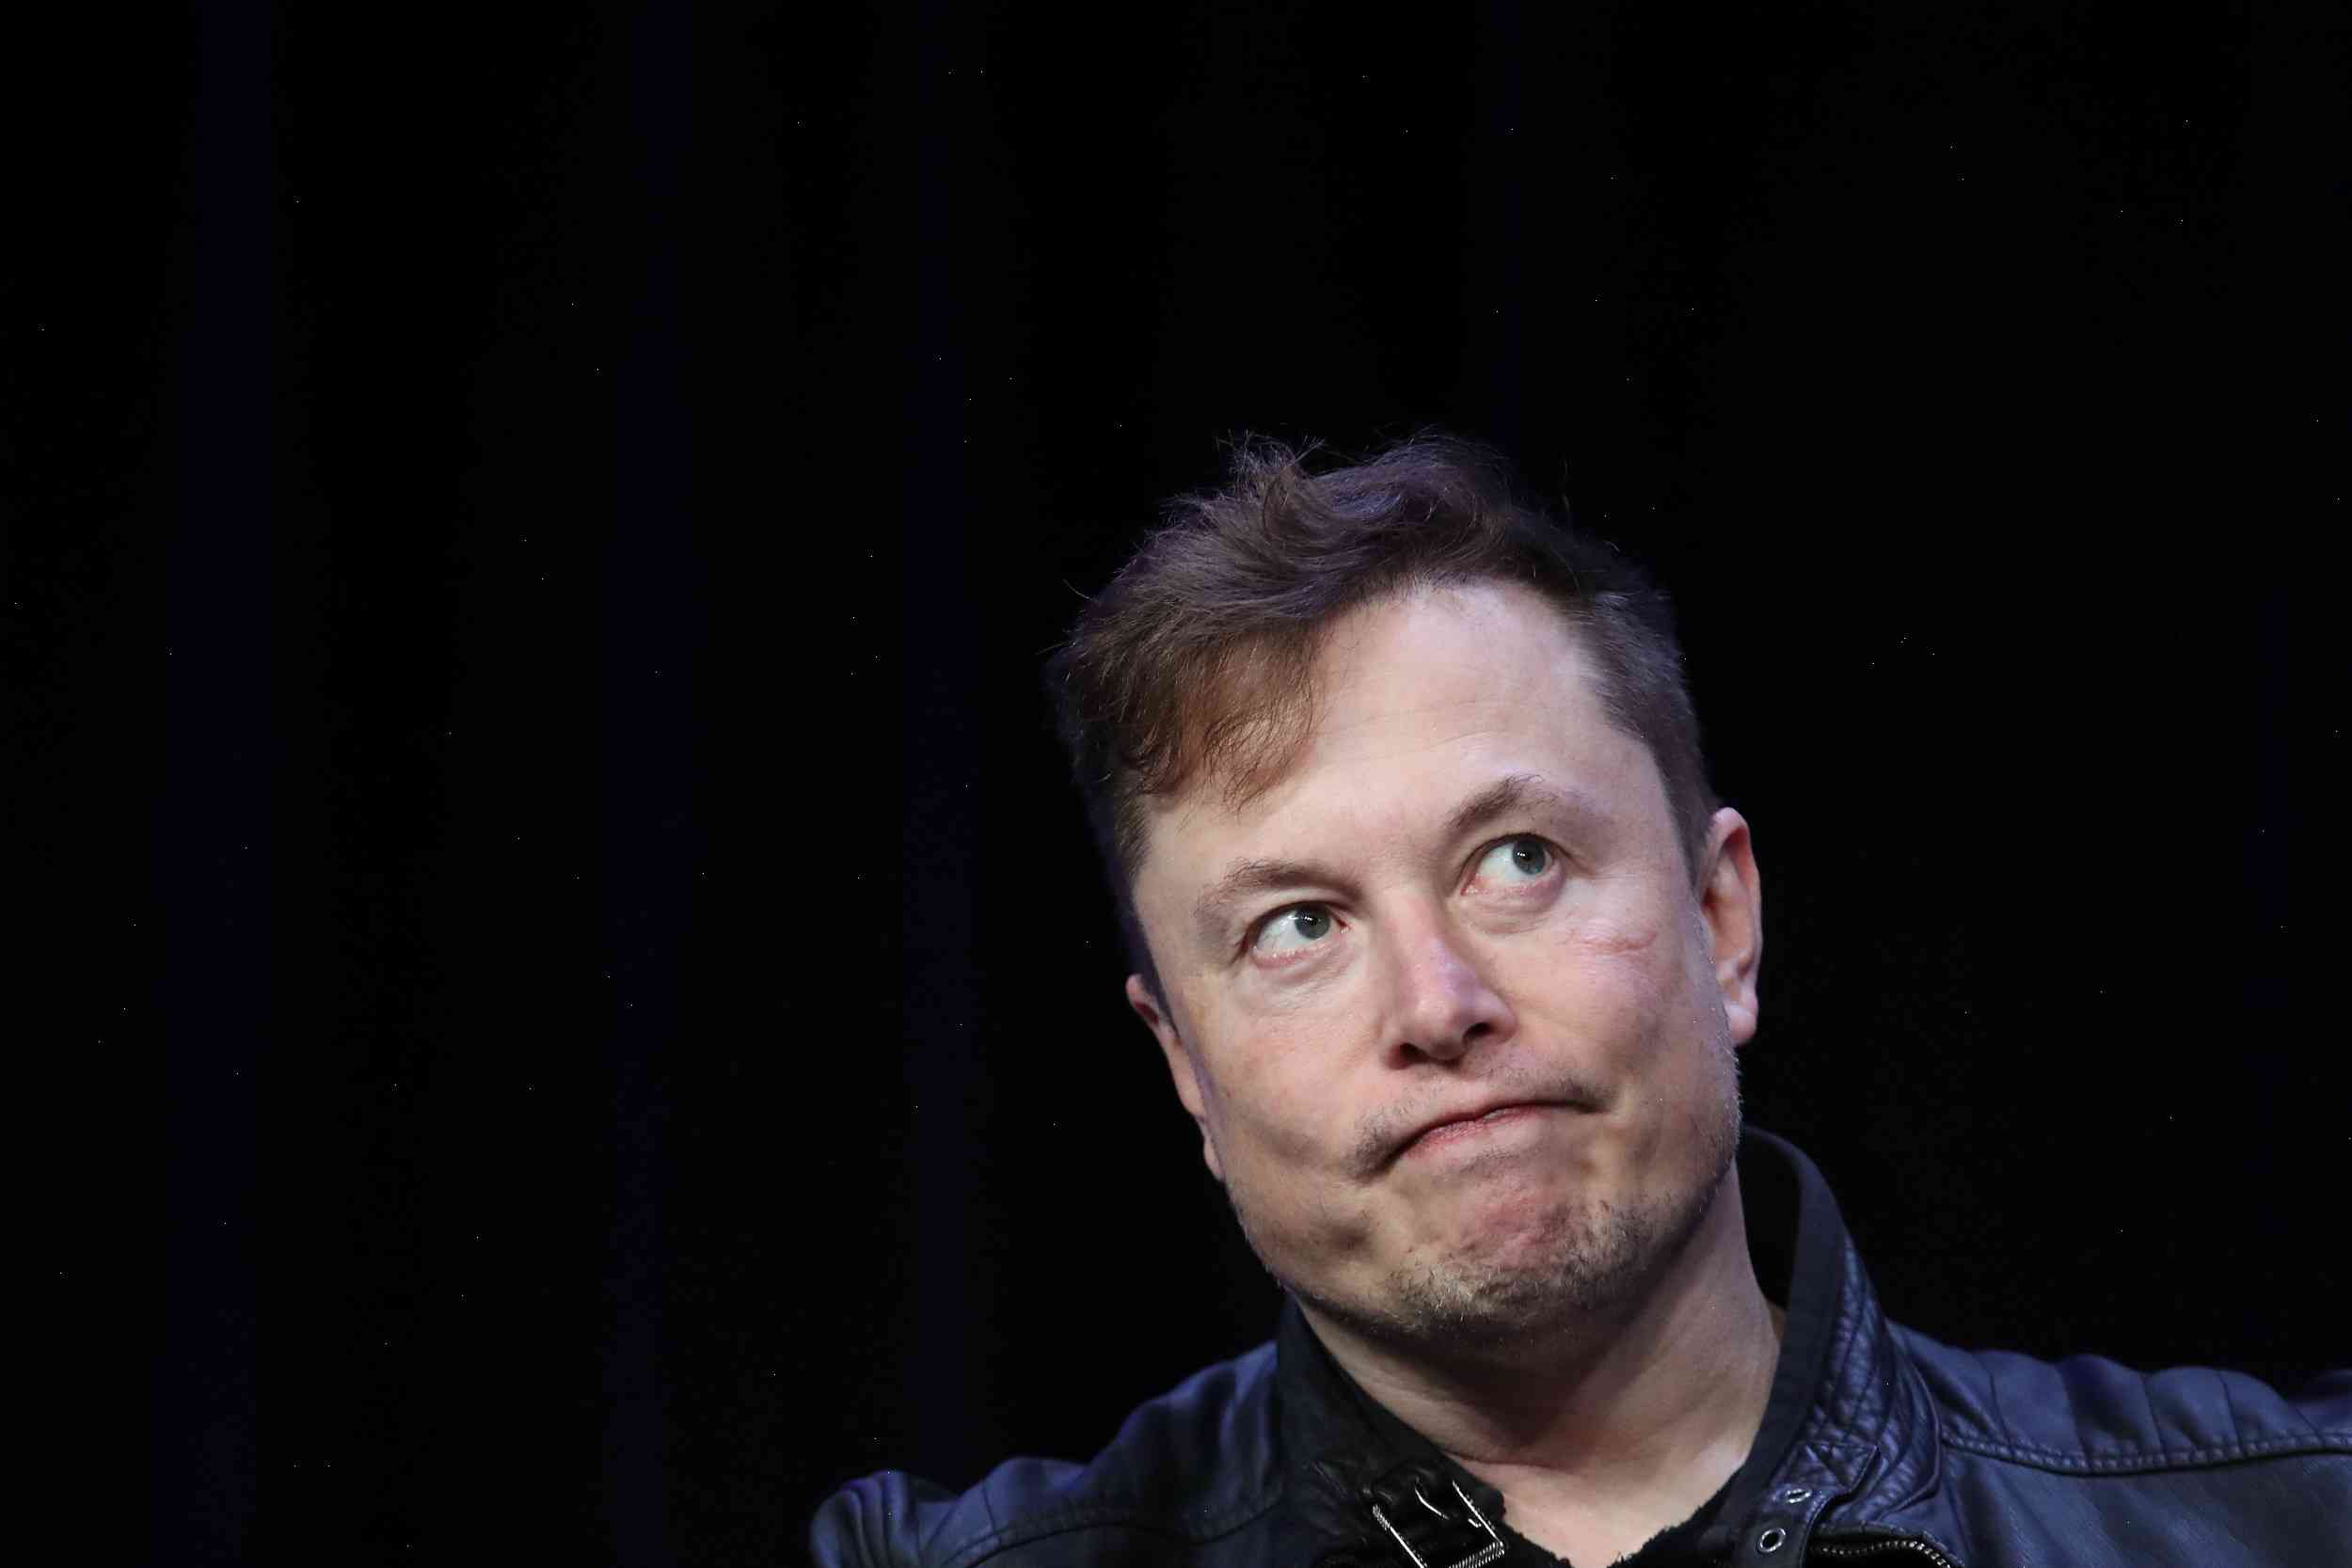 Elon Musk says reports that Tesla will open plant in Russia are inaccurate